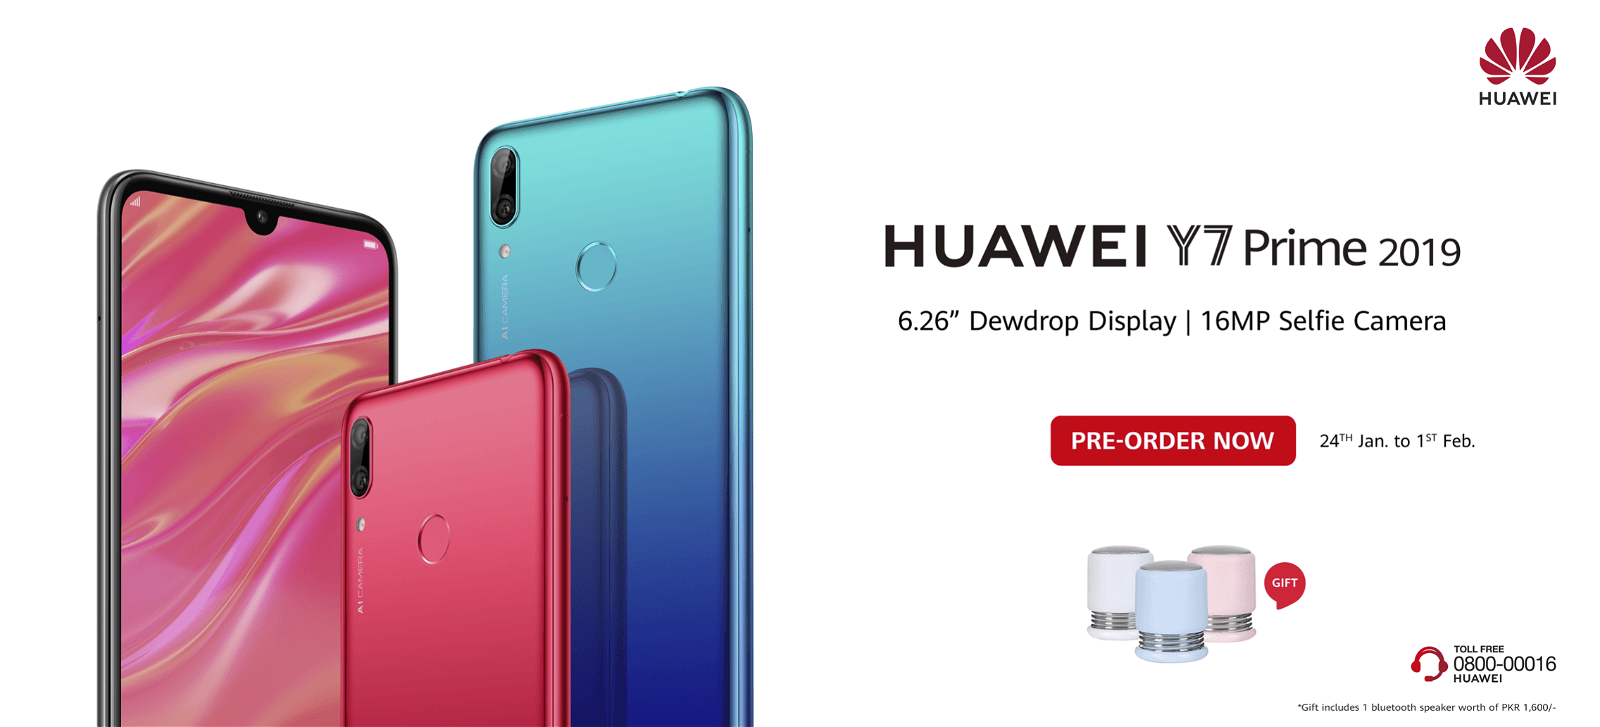 Huawei Y7 Prime 2019 Available for Pre-Order in Pakistan 2